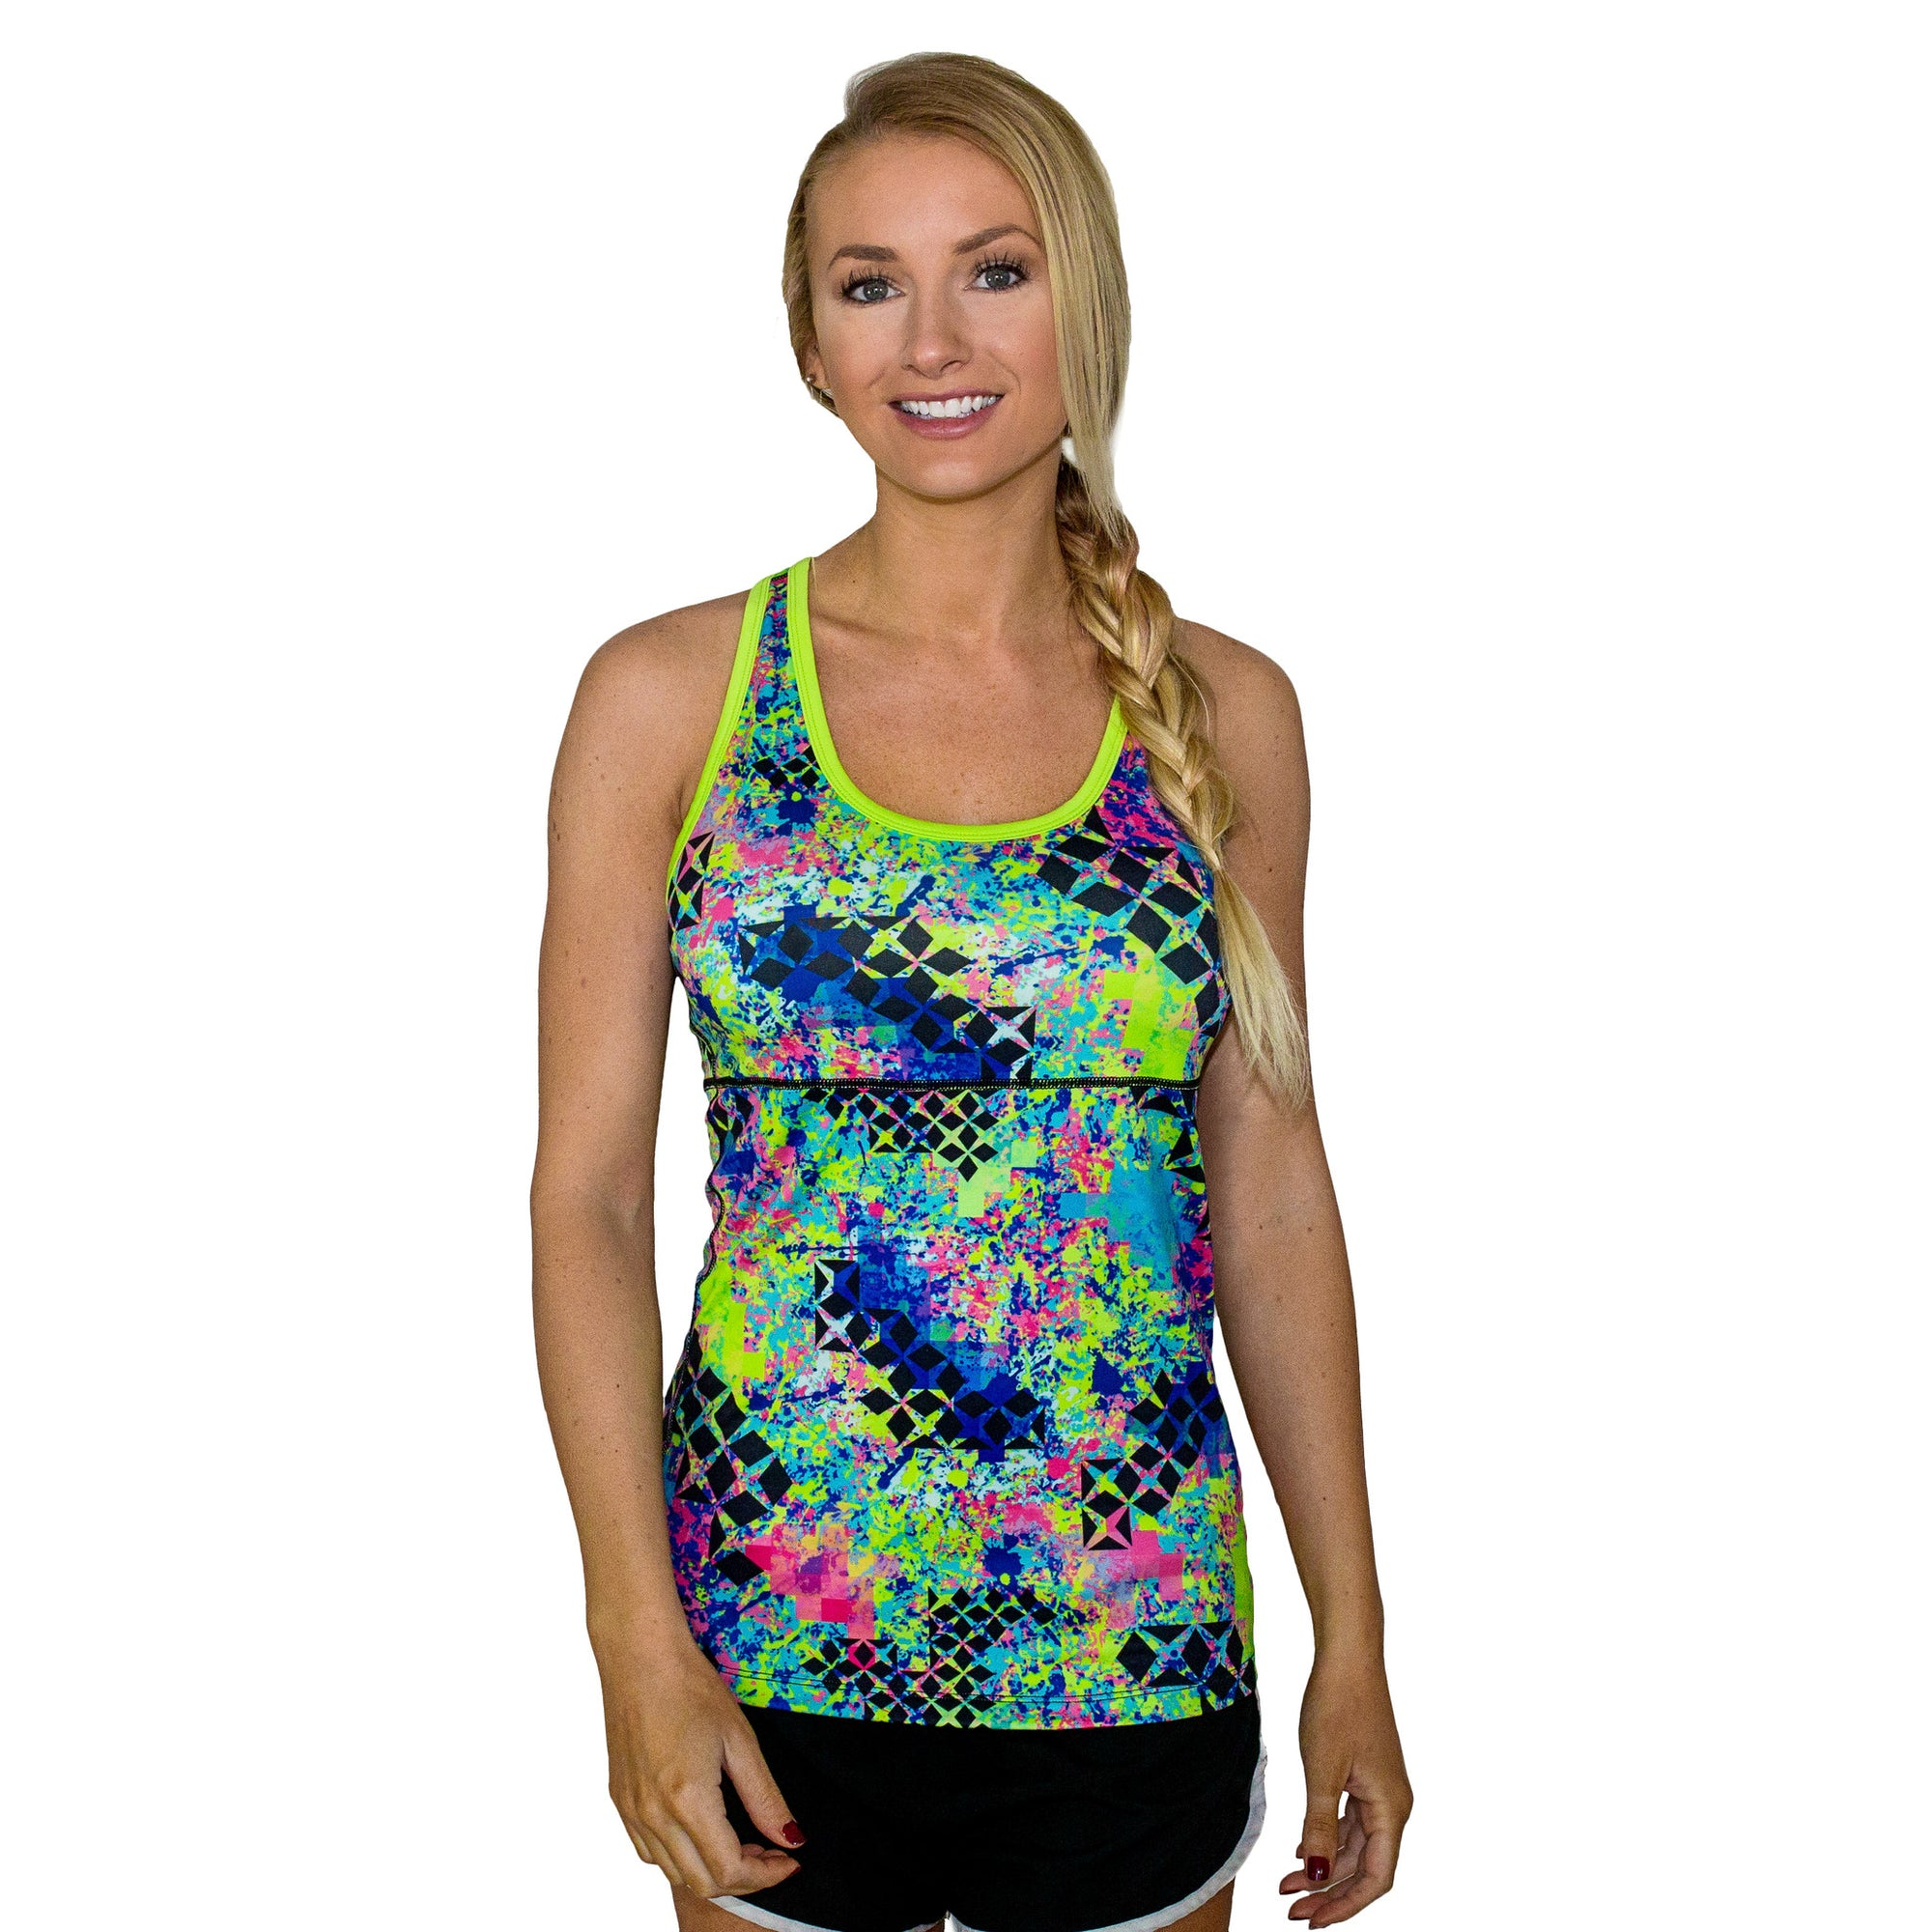 The Ava Womens Racerback Tank - Graffiti Splash